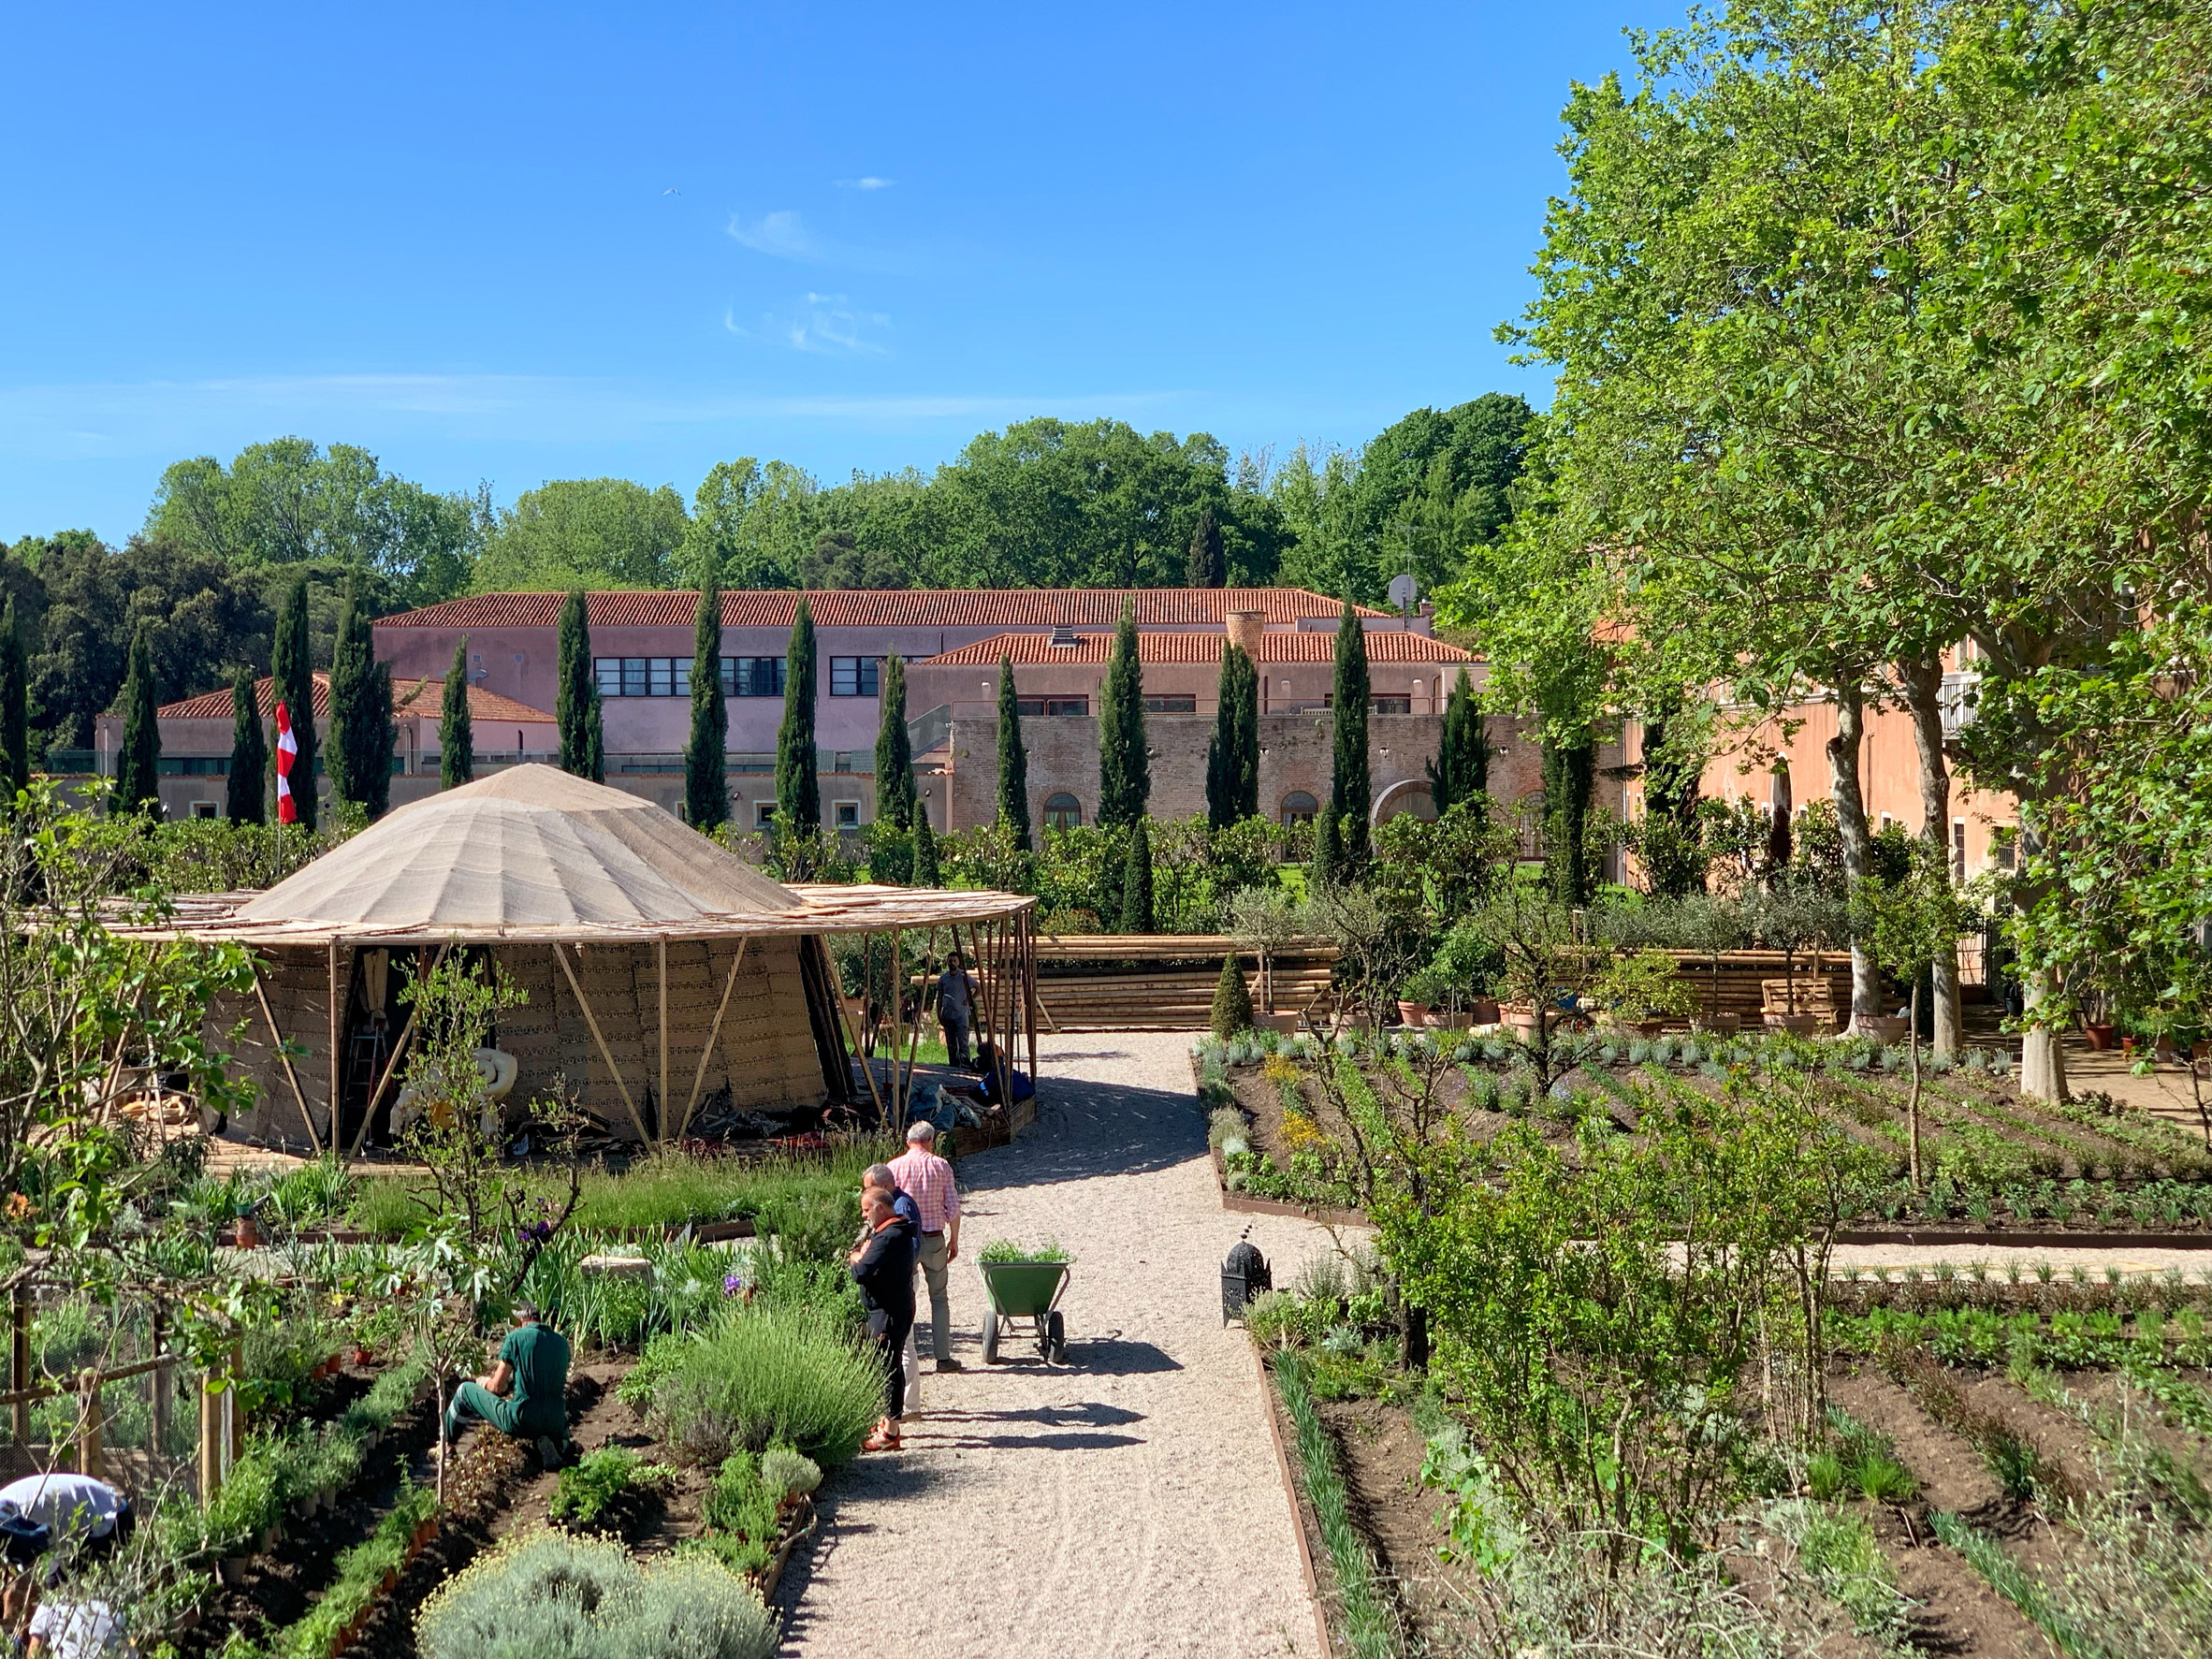 The Majlis and garden at Venice Architecture Biennale